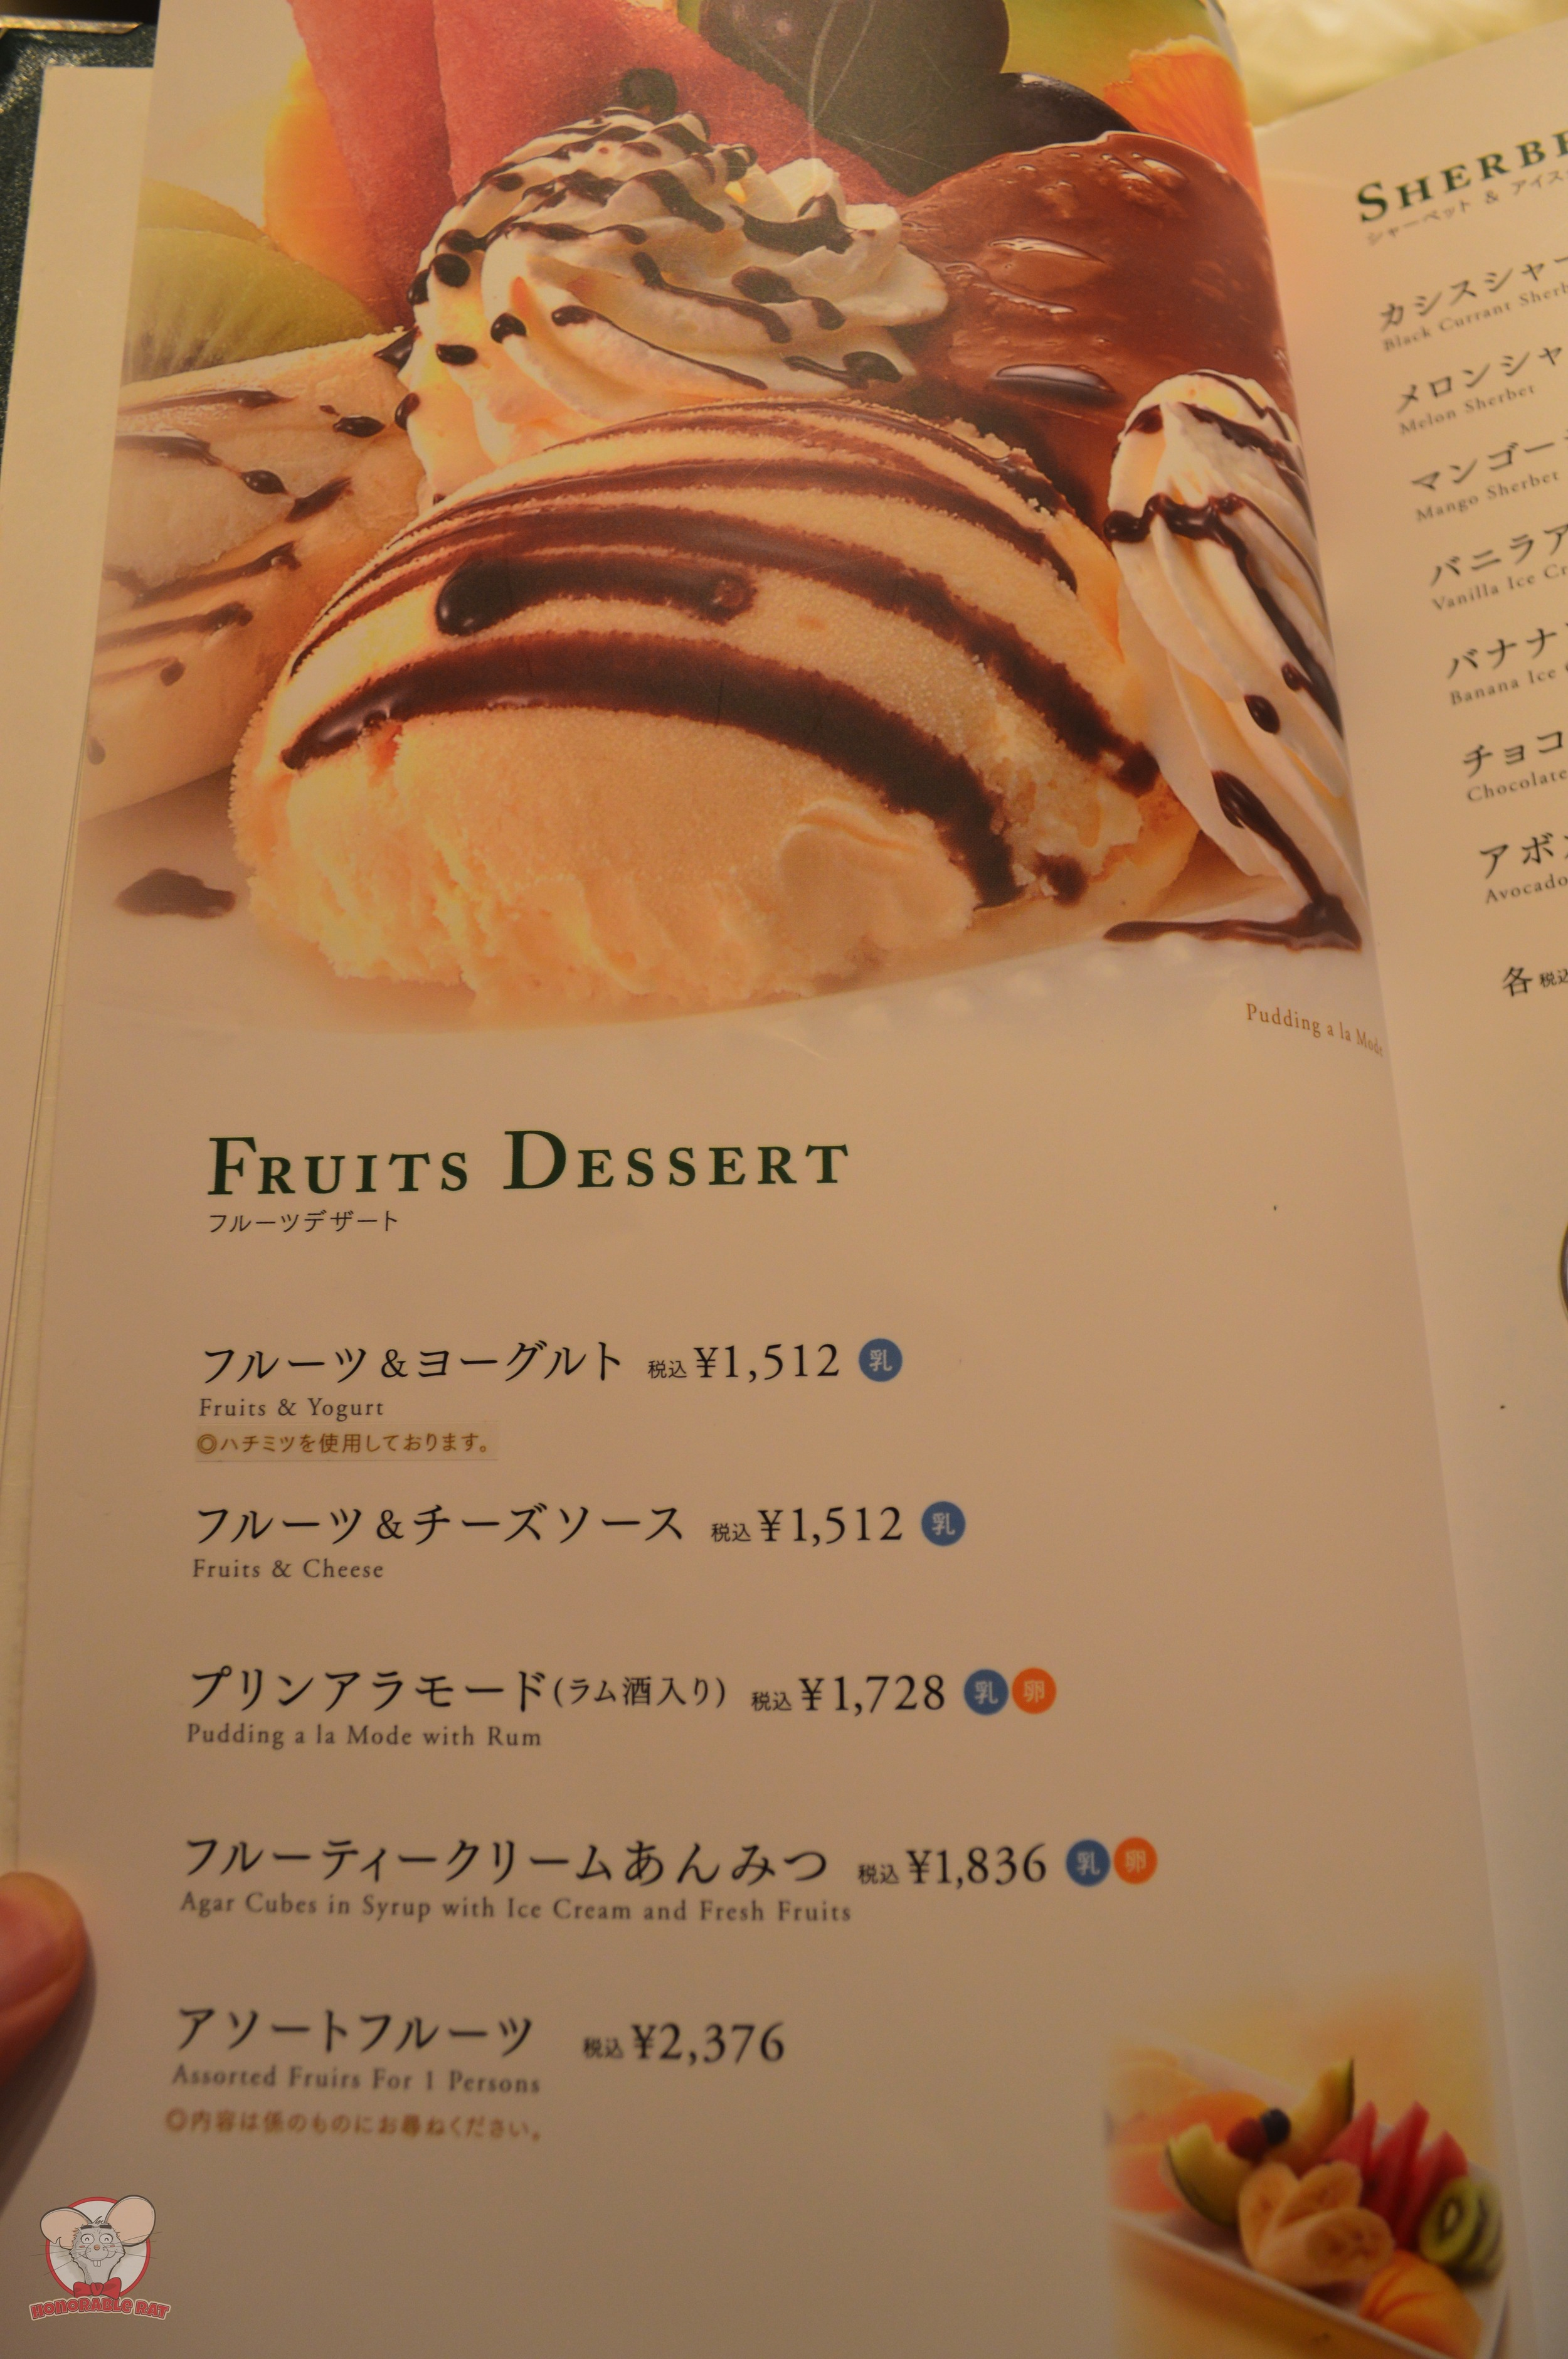 Fruits Dessert Page 1